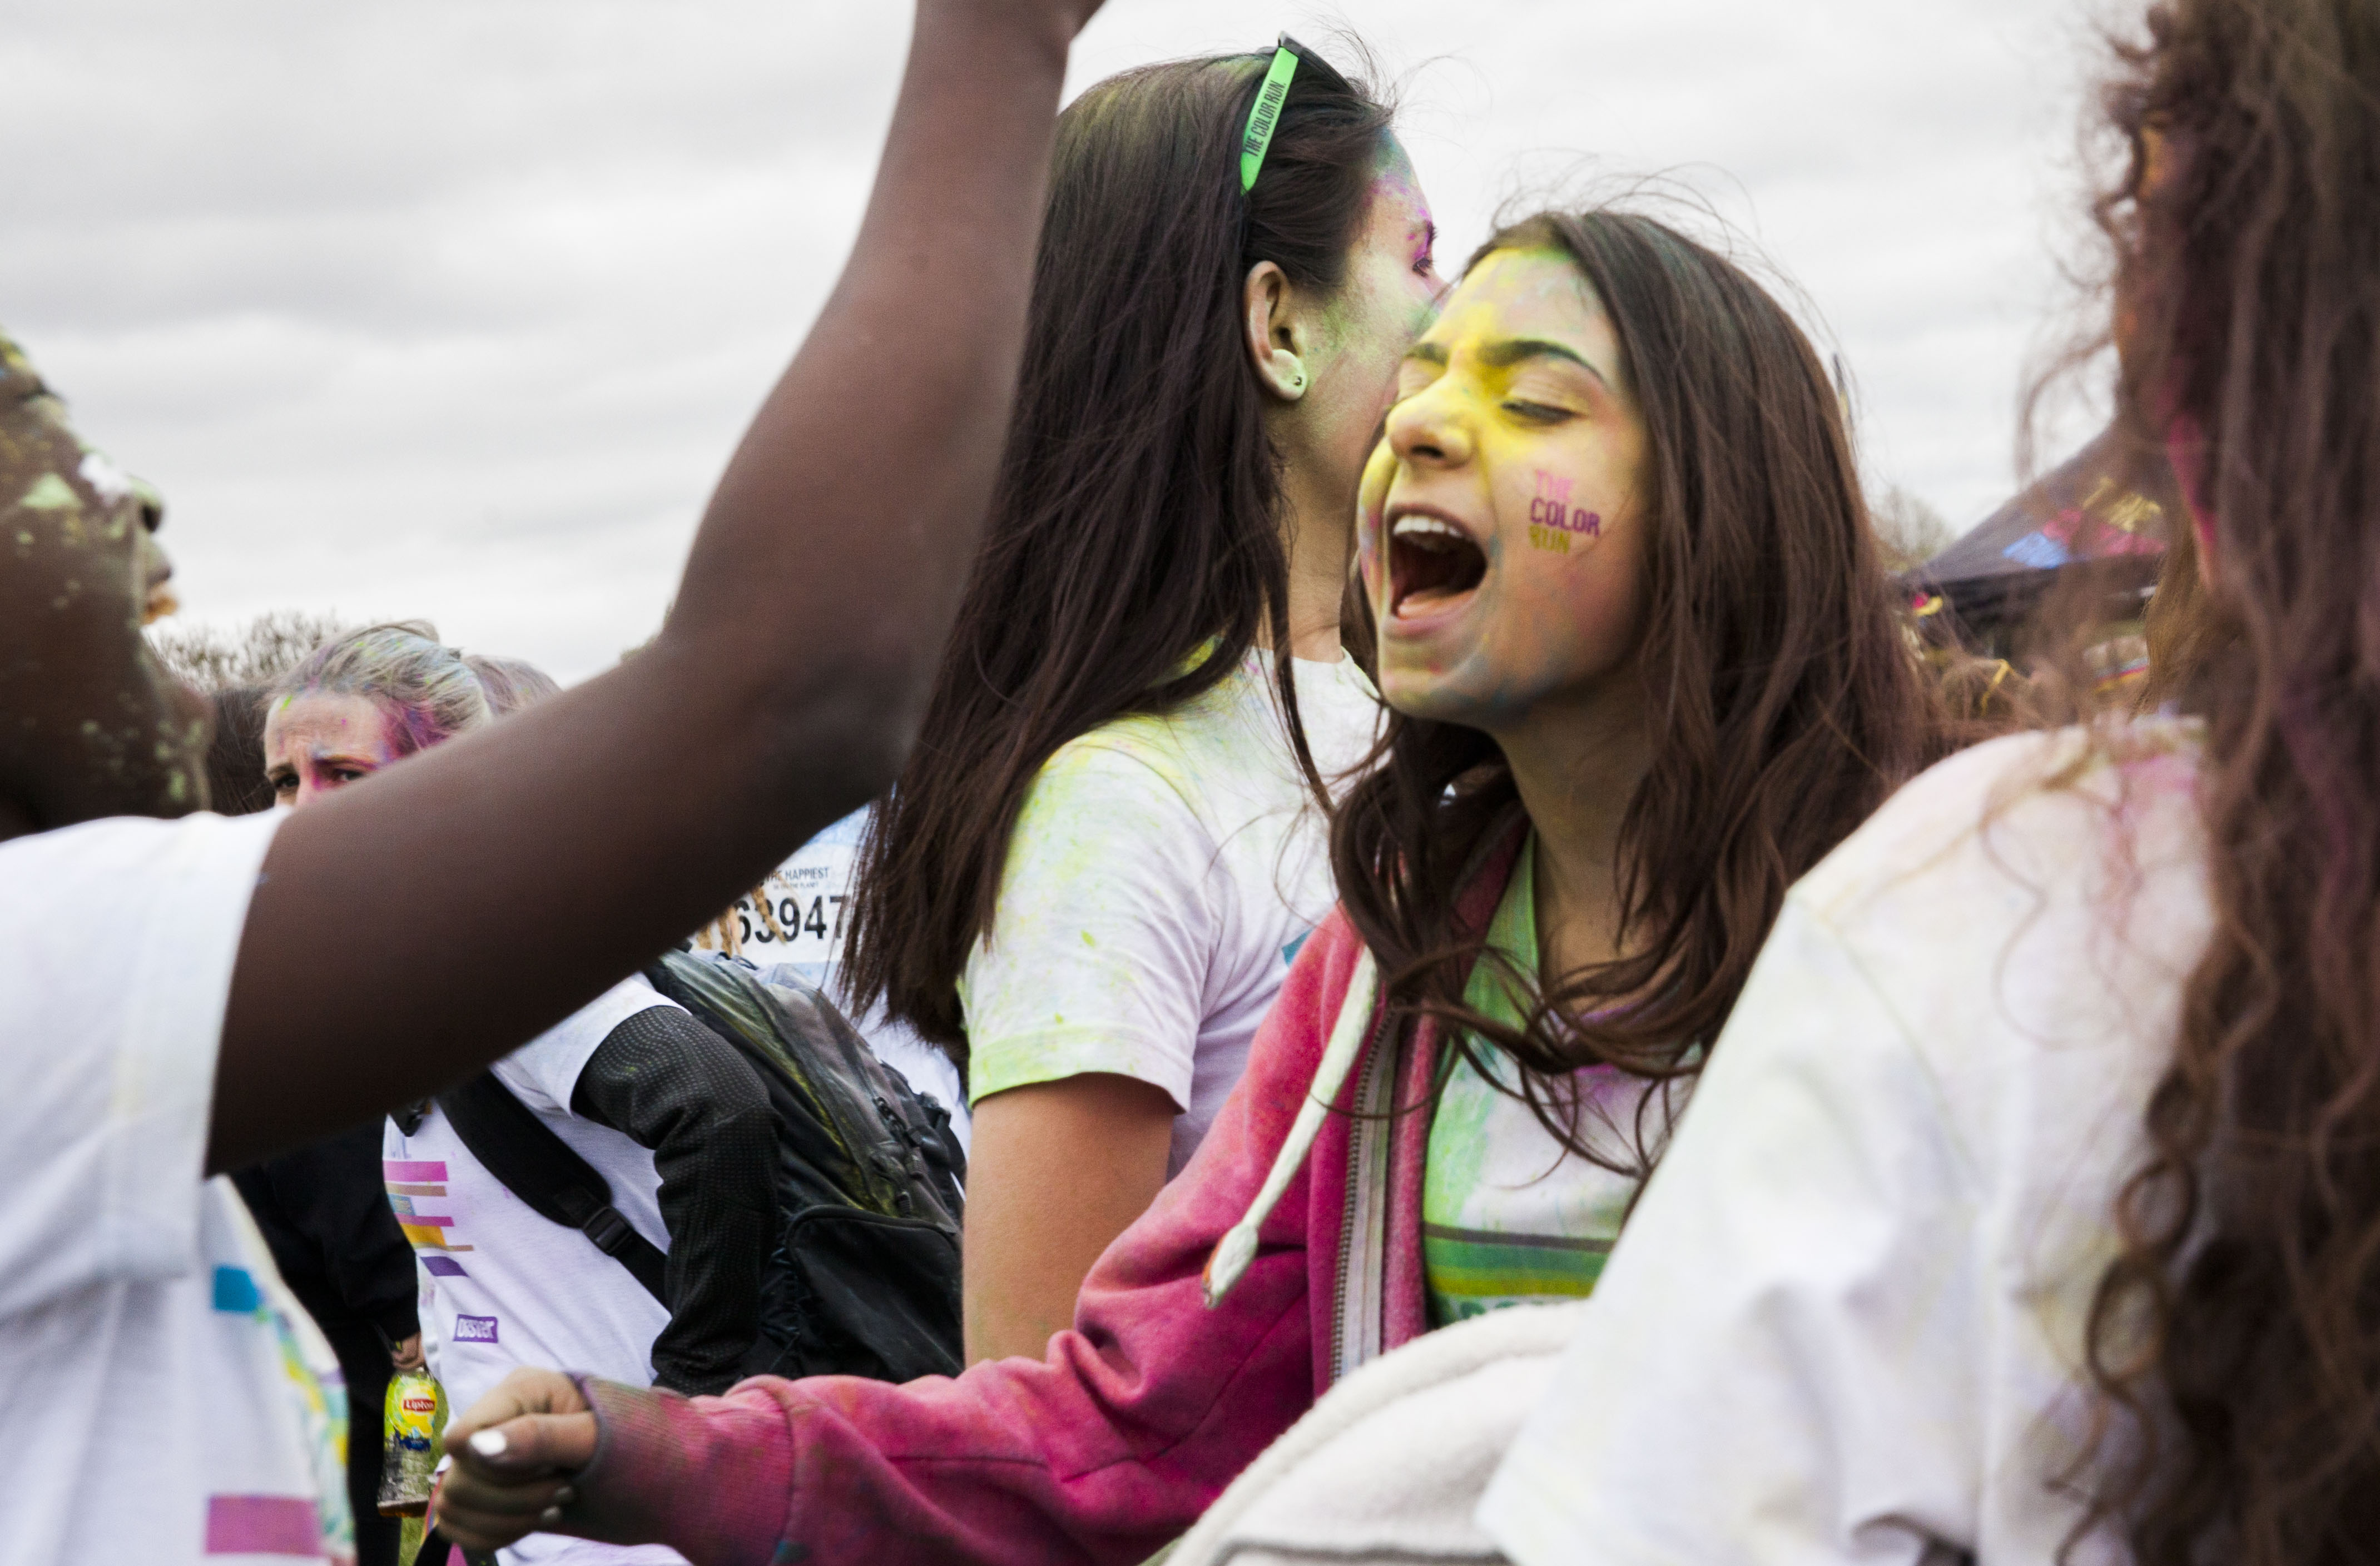 TheColorRun2015_HelenaLundquist_mindre_3